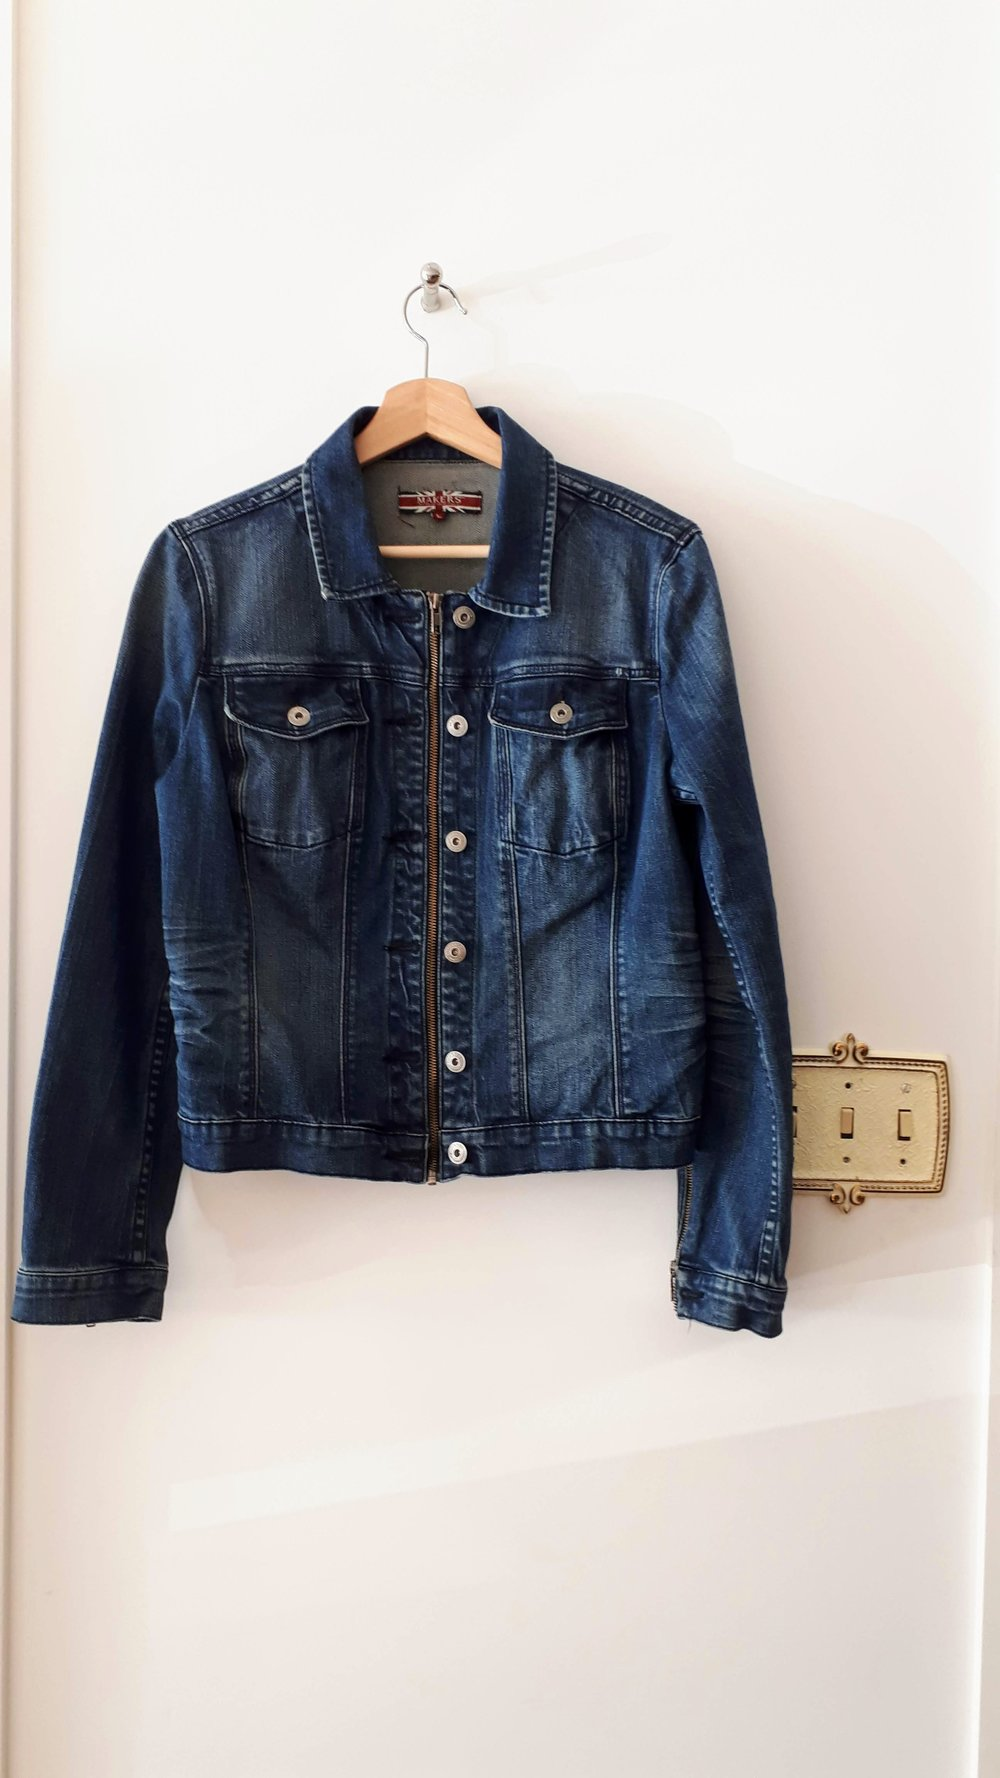 Makers jacket; Size M, $38